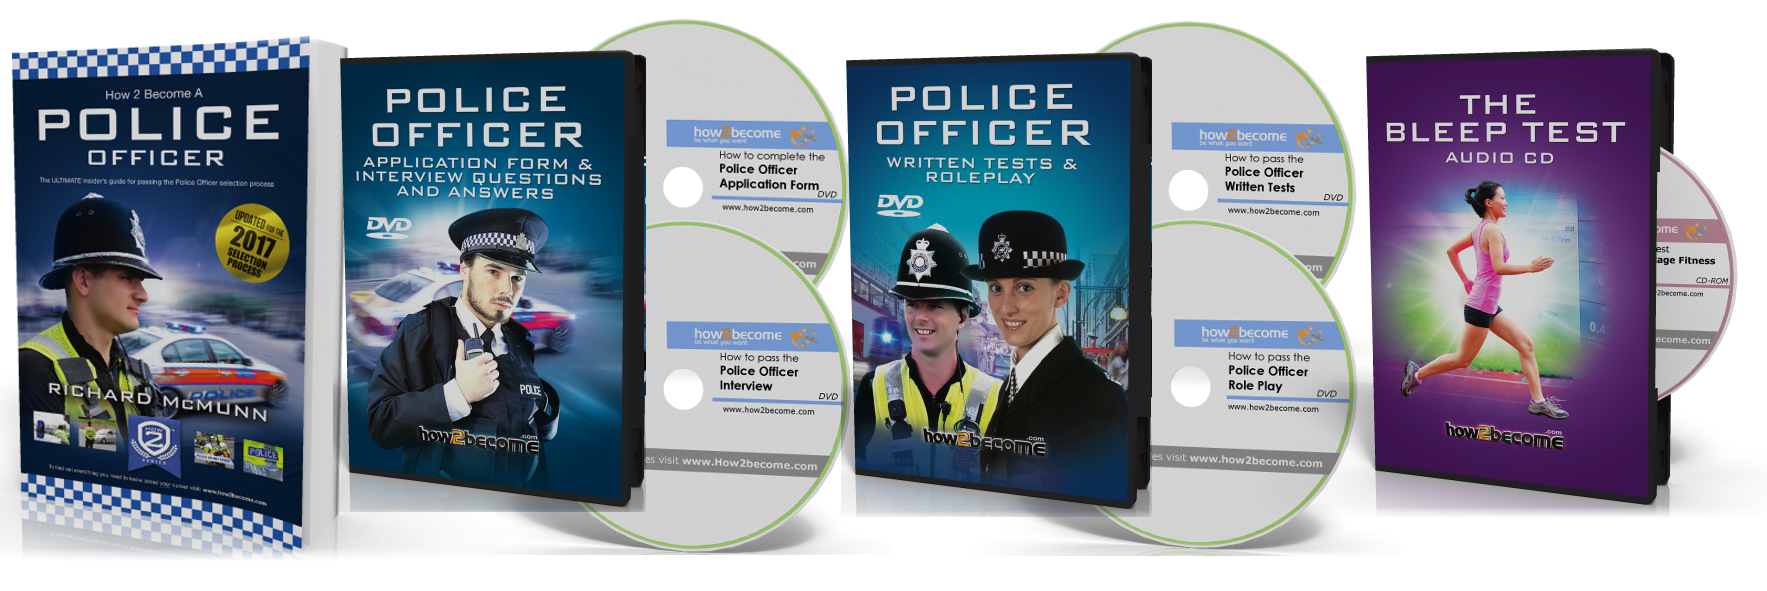 Police officer essay PBS Find the Best